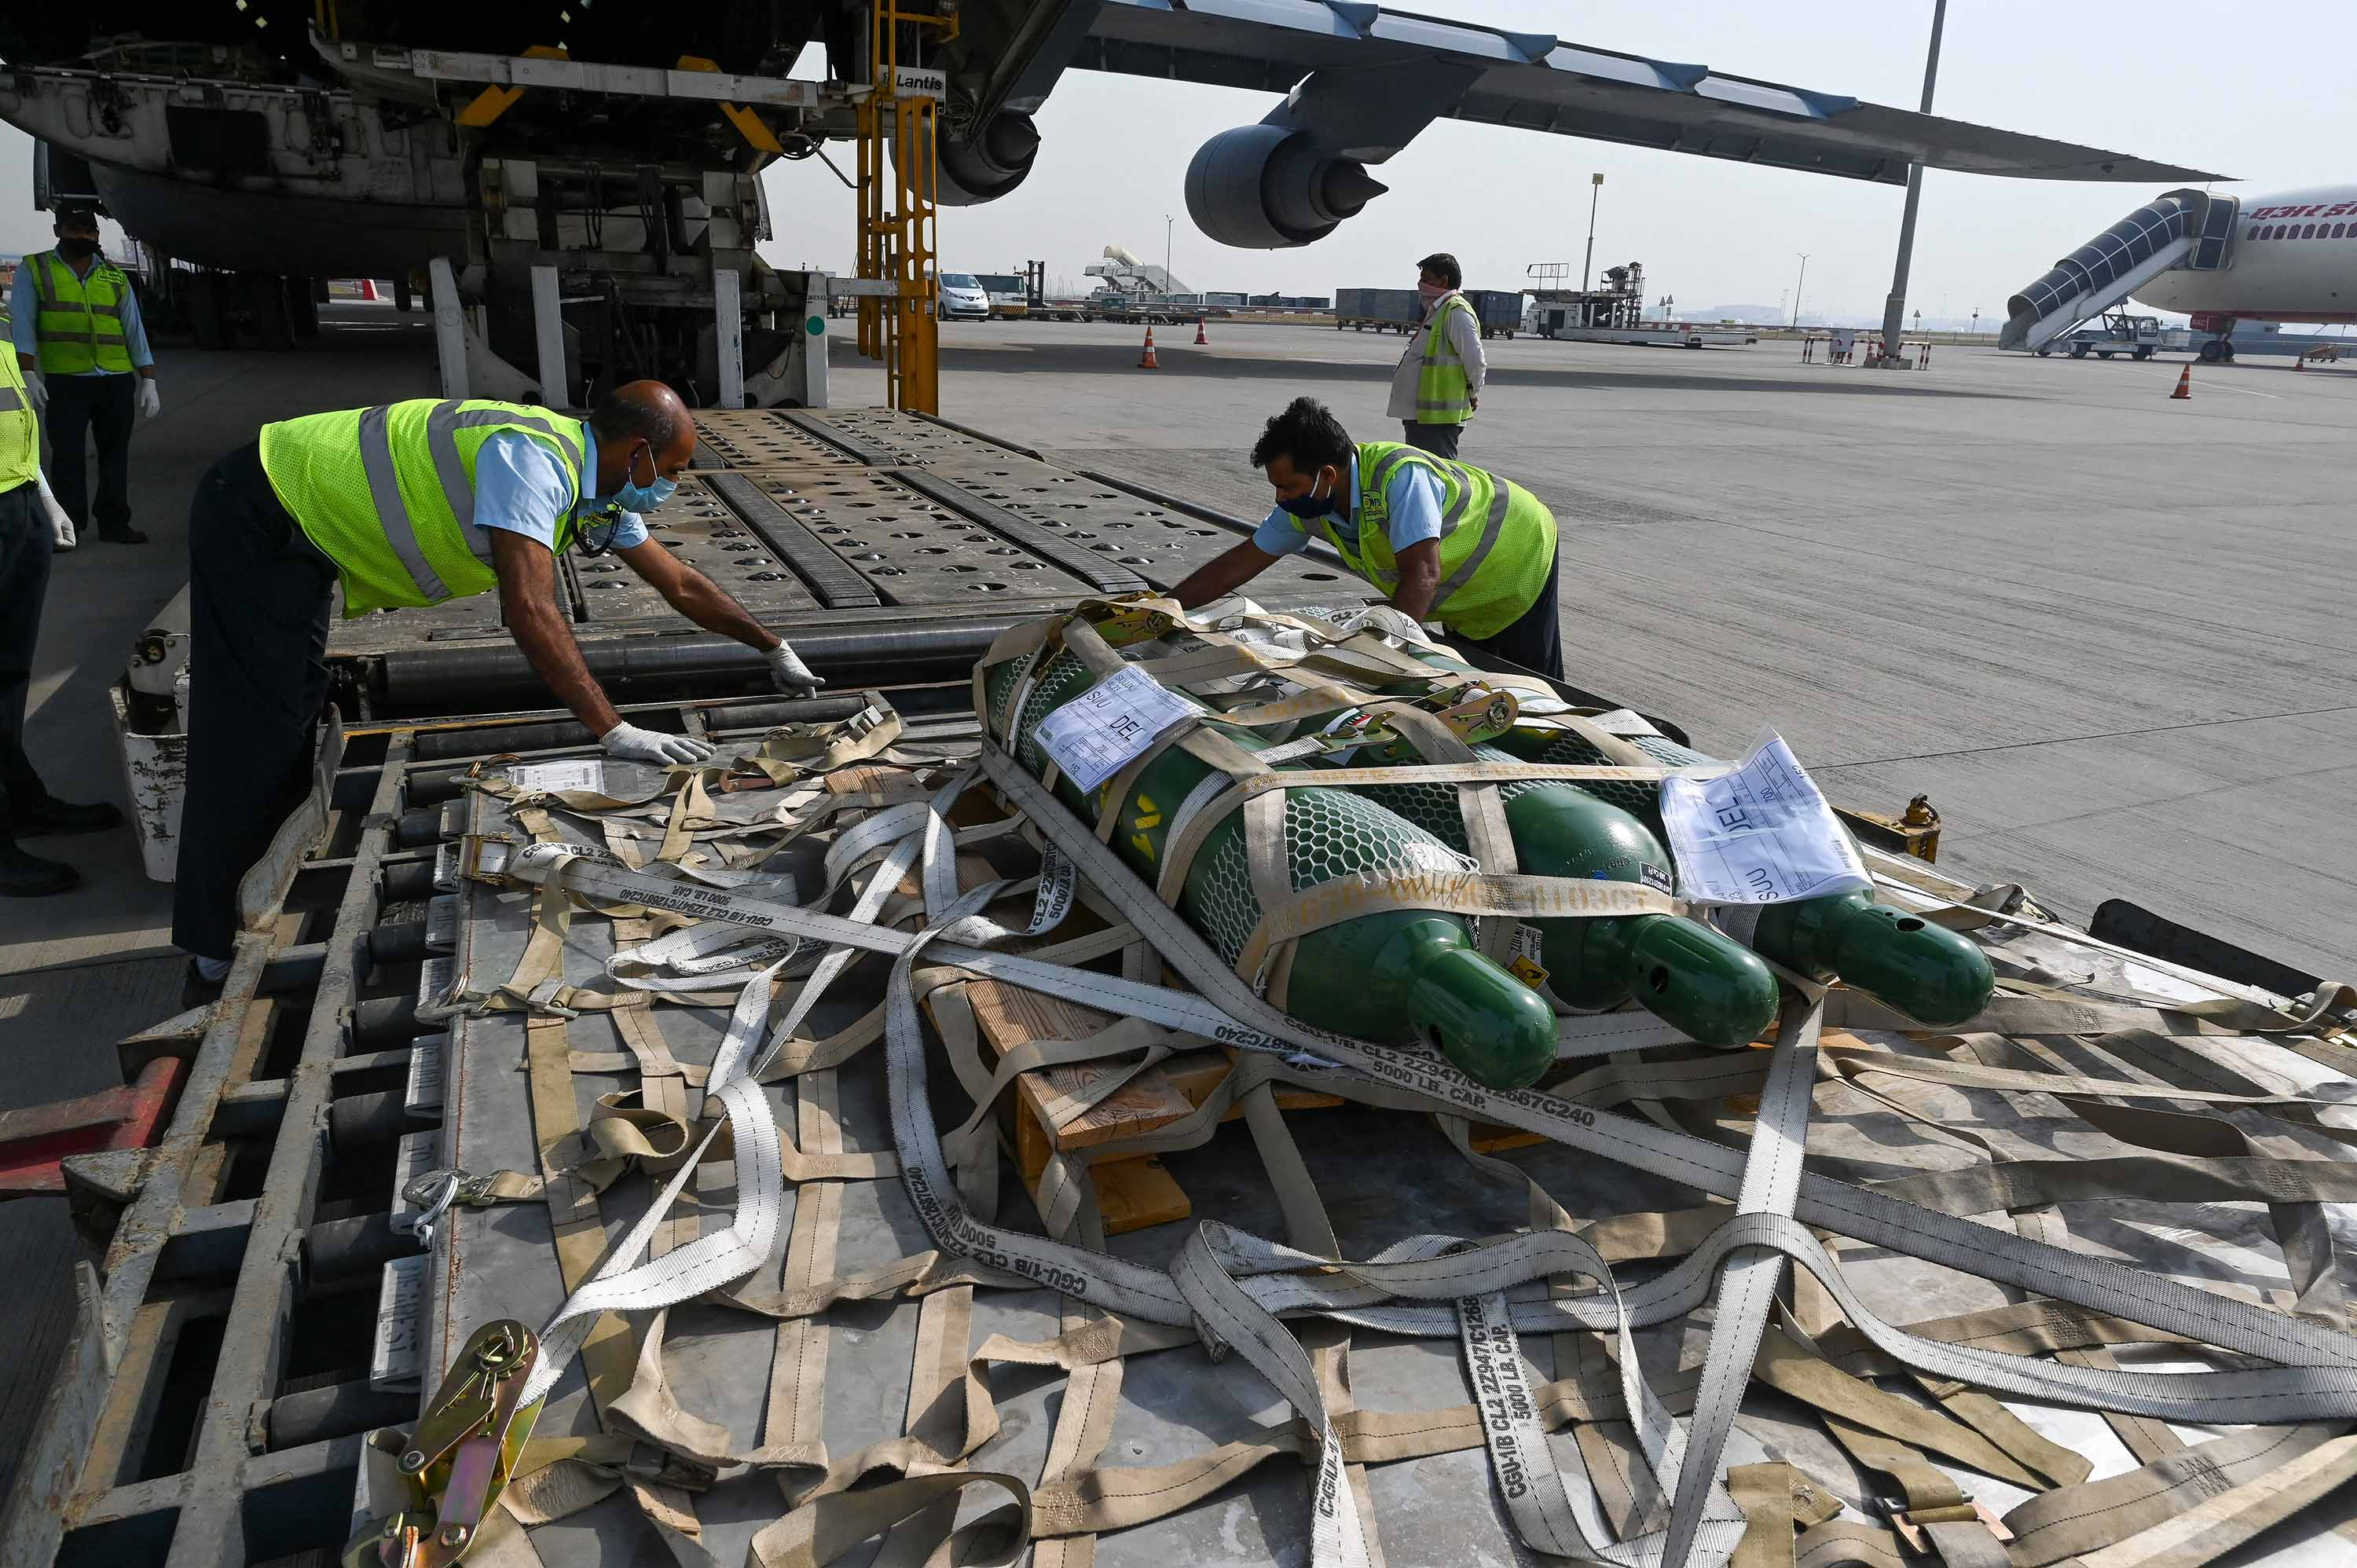 Ground staff unload Covid-19 relief supplies sent from the US, at Indira Gandhi International Airport in New Delhi, on April 30.